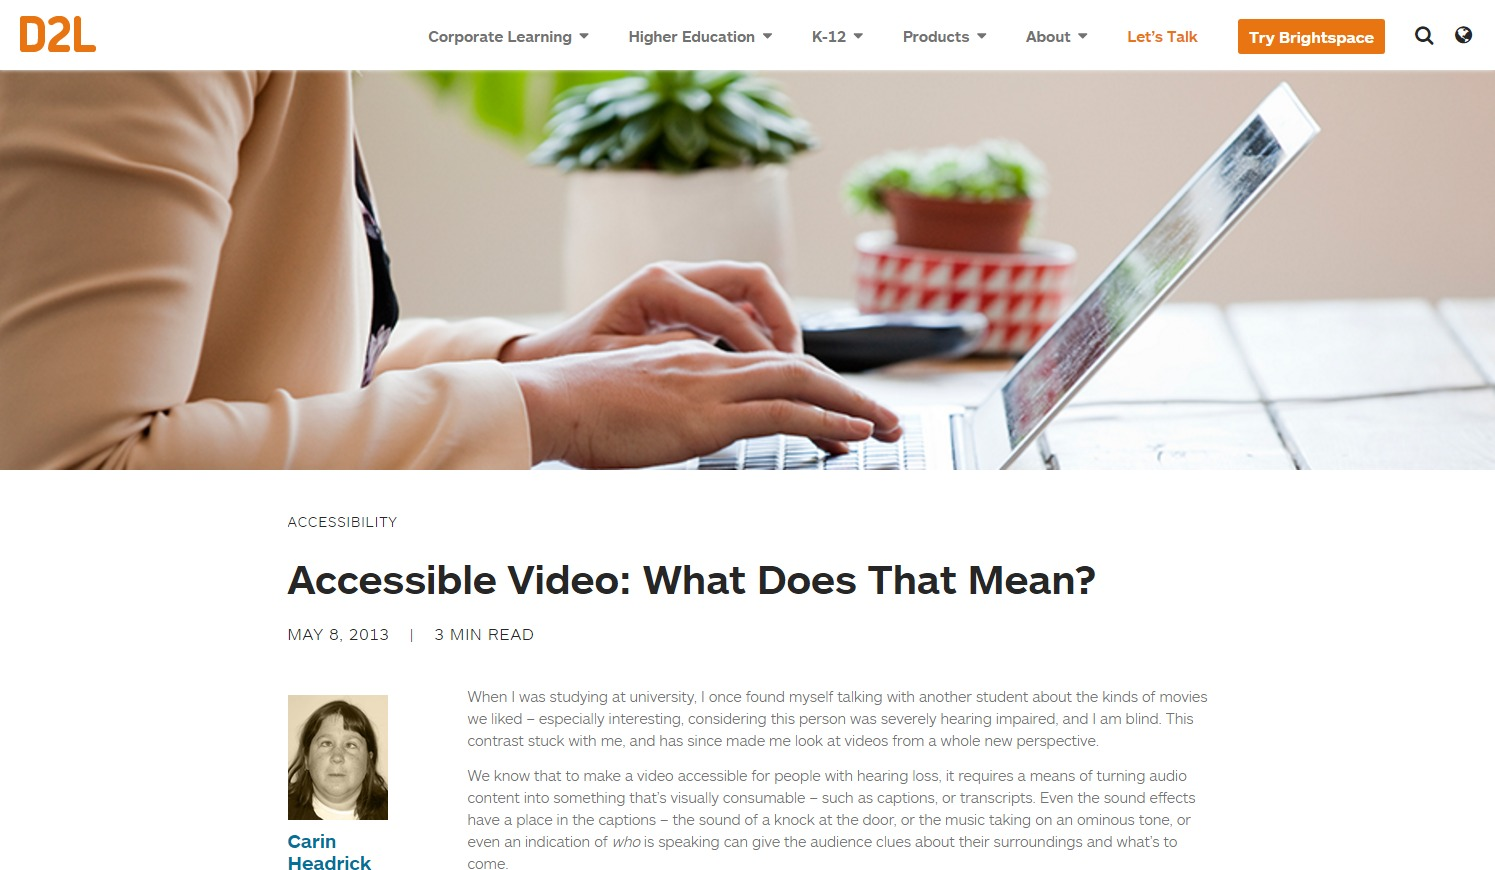 Accessible Video: What Does that Mean?